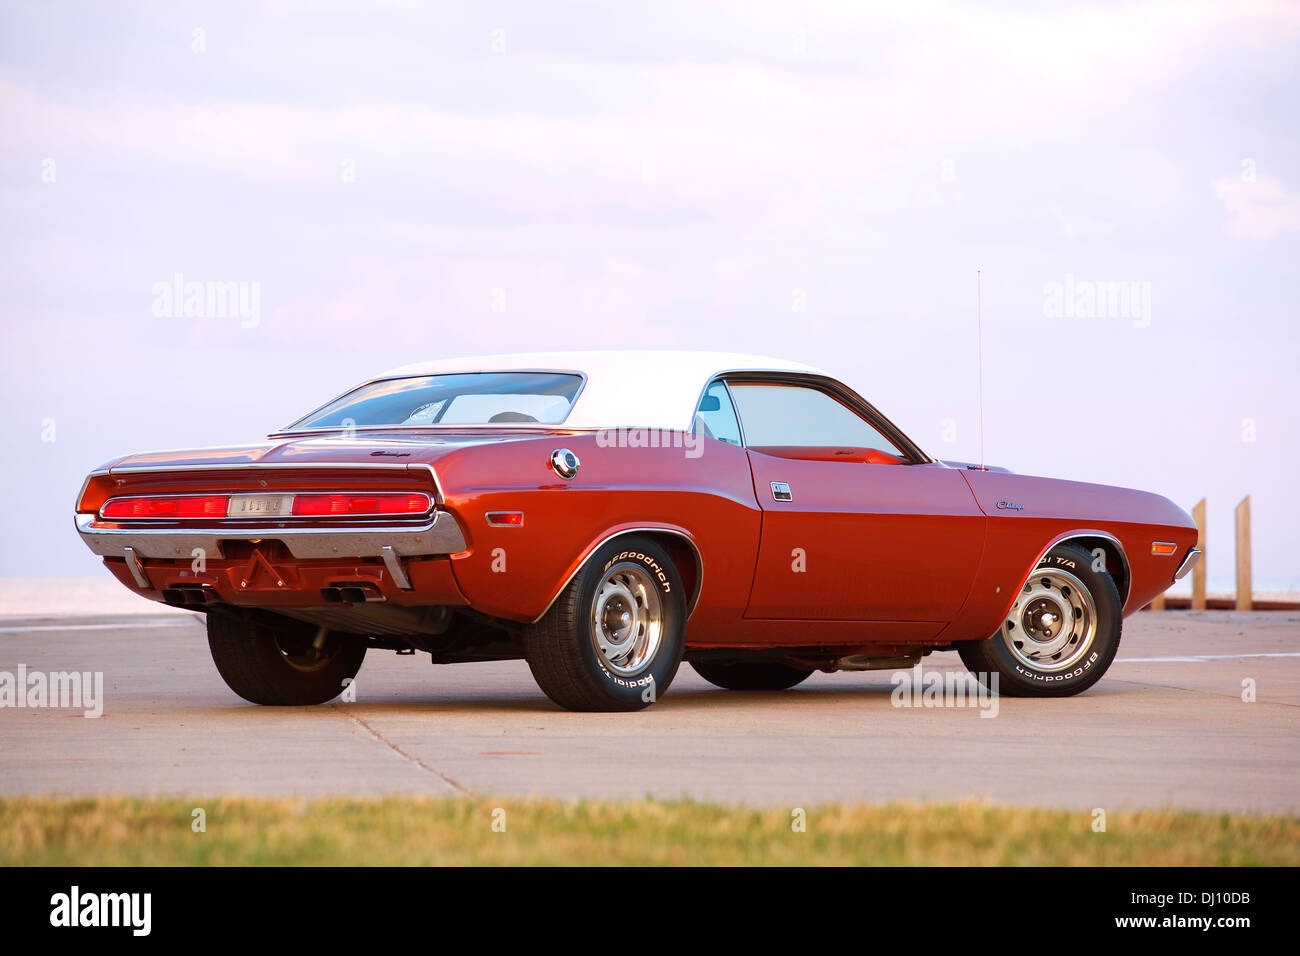 1970 Dodge Challenger Muscle Car Rear 3 4 Stock Photo 62717239 Alamy